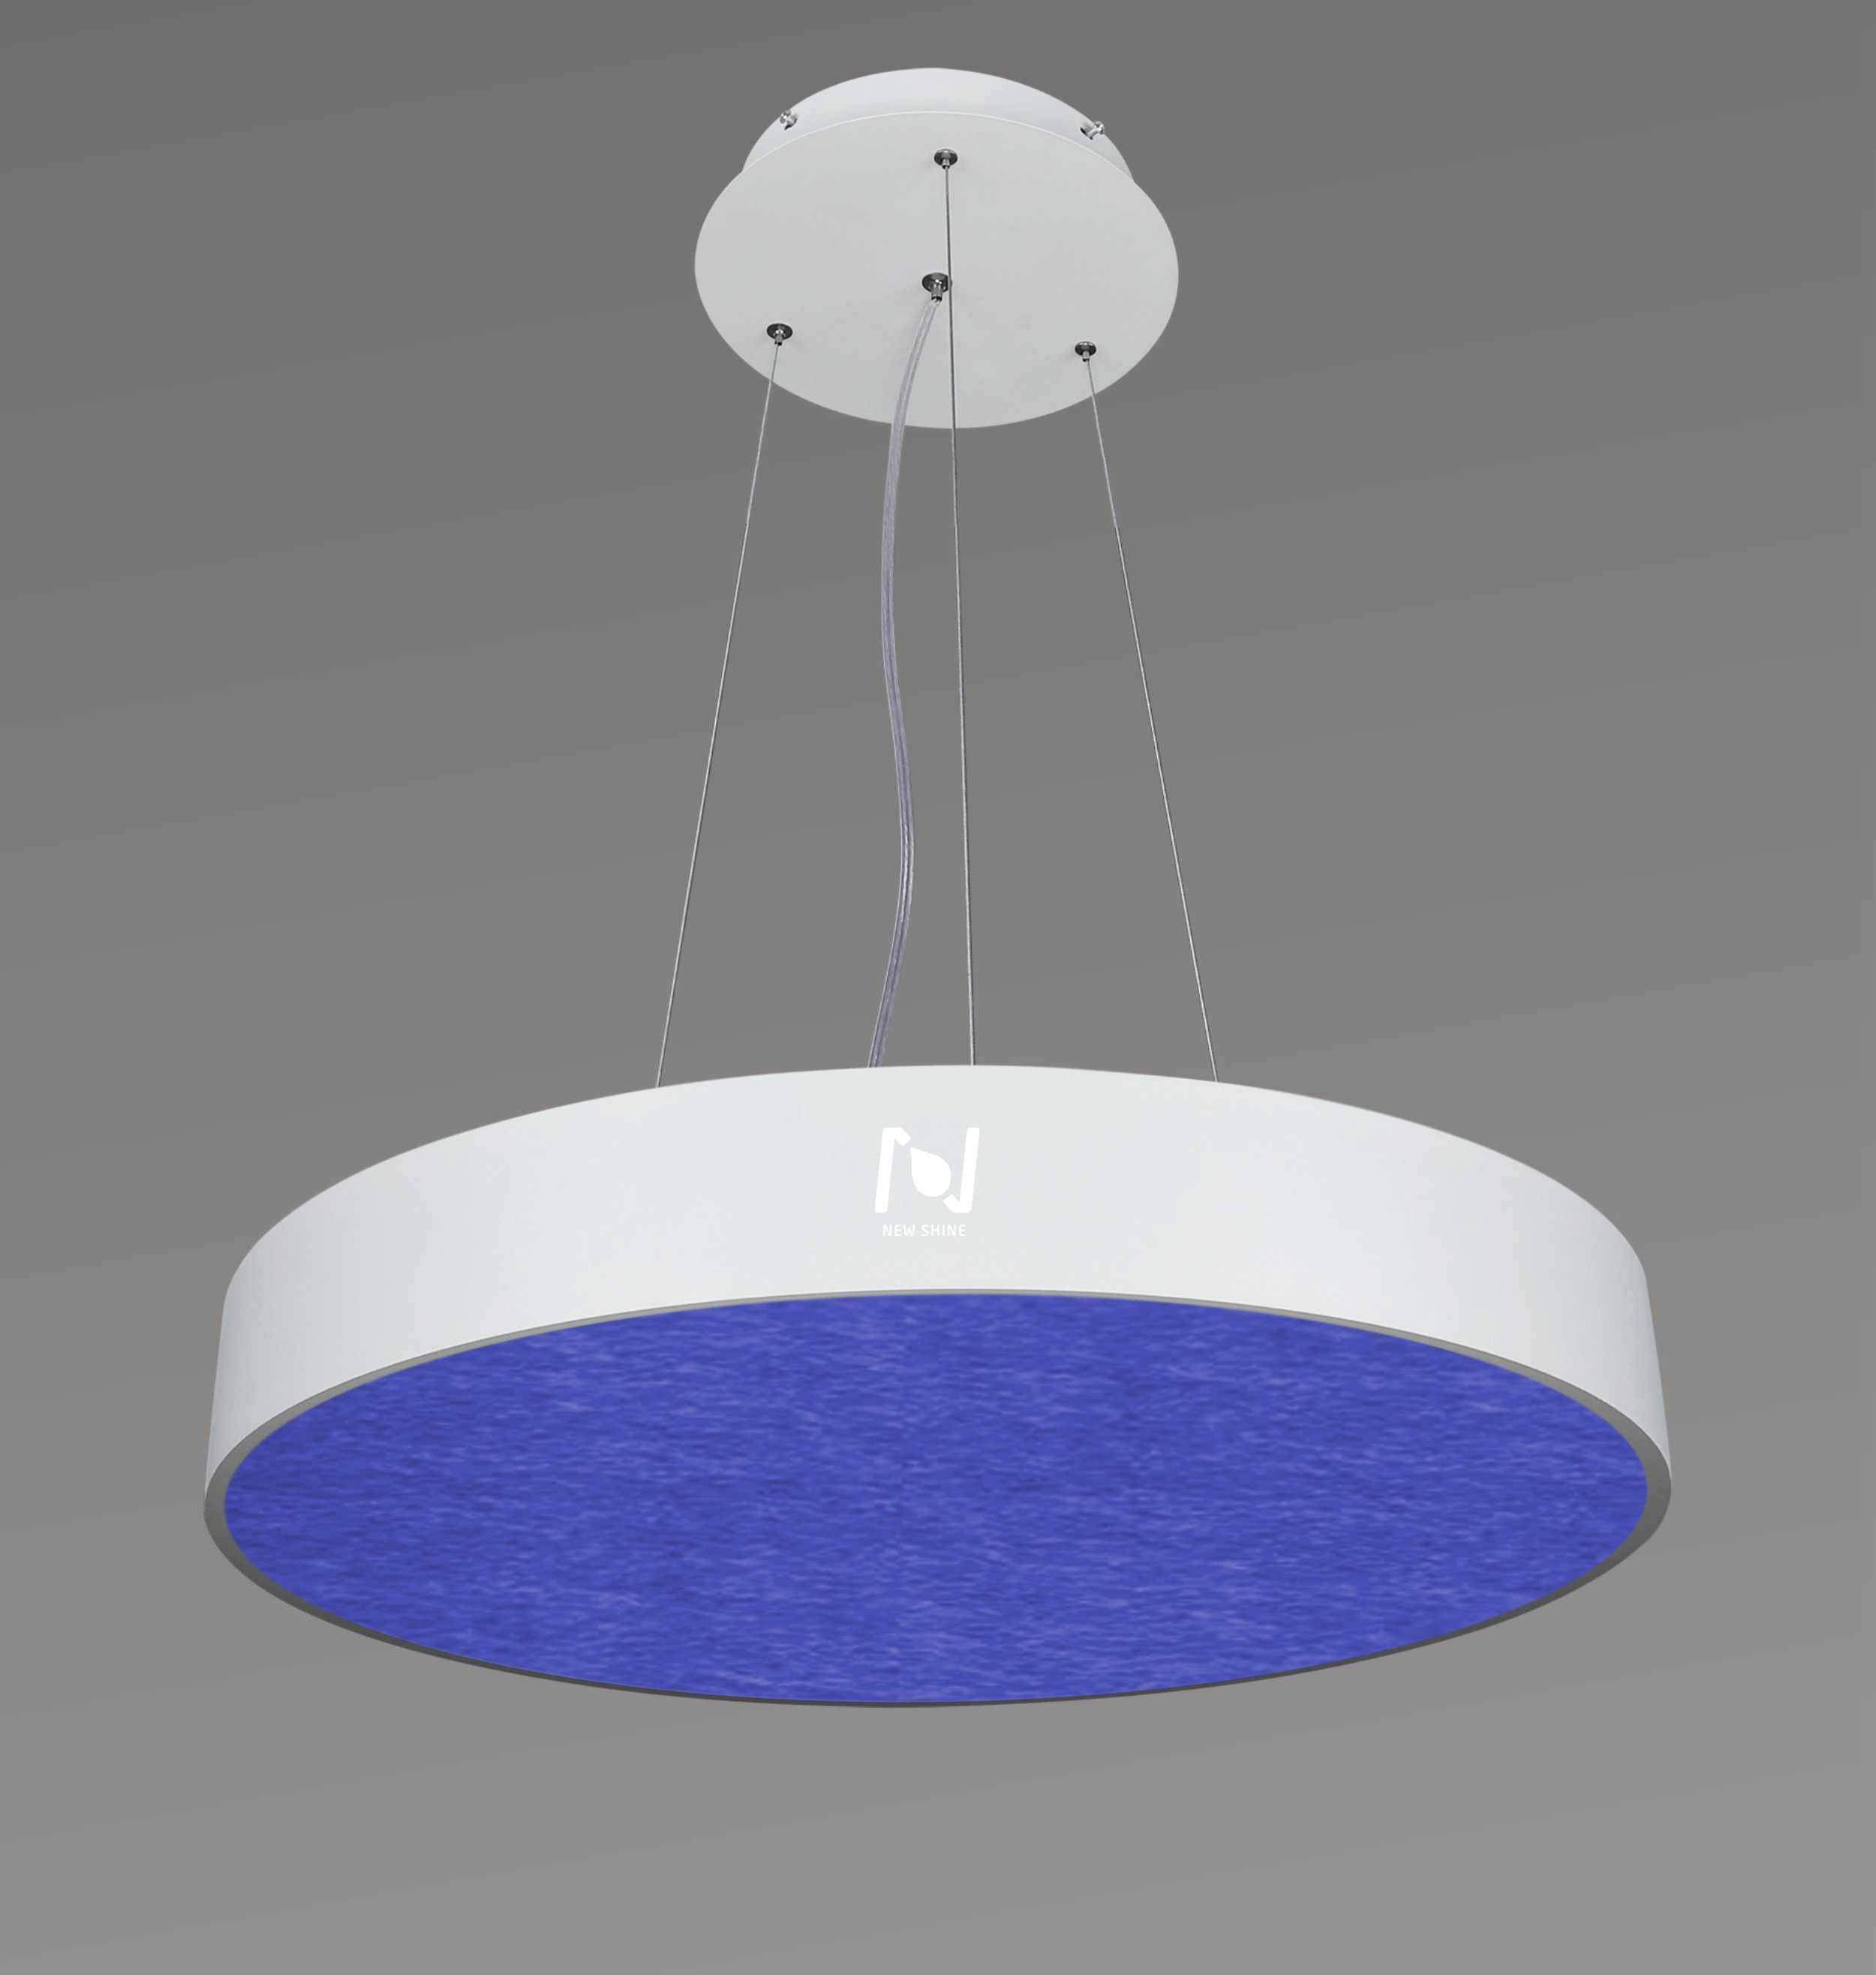 Acoustic moon light architectural lighting solutions LL0112SAC-900